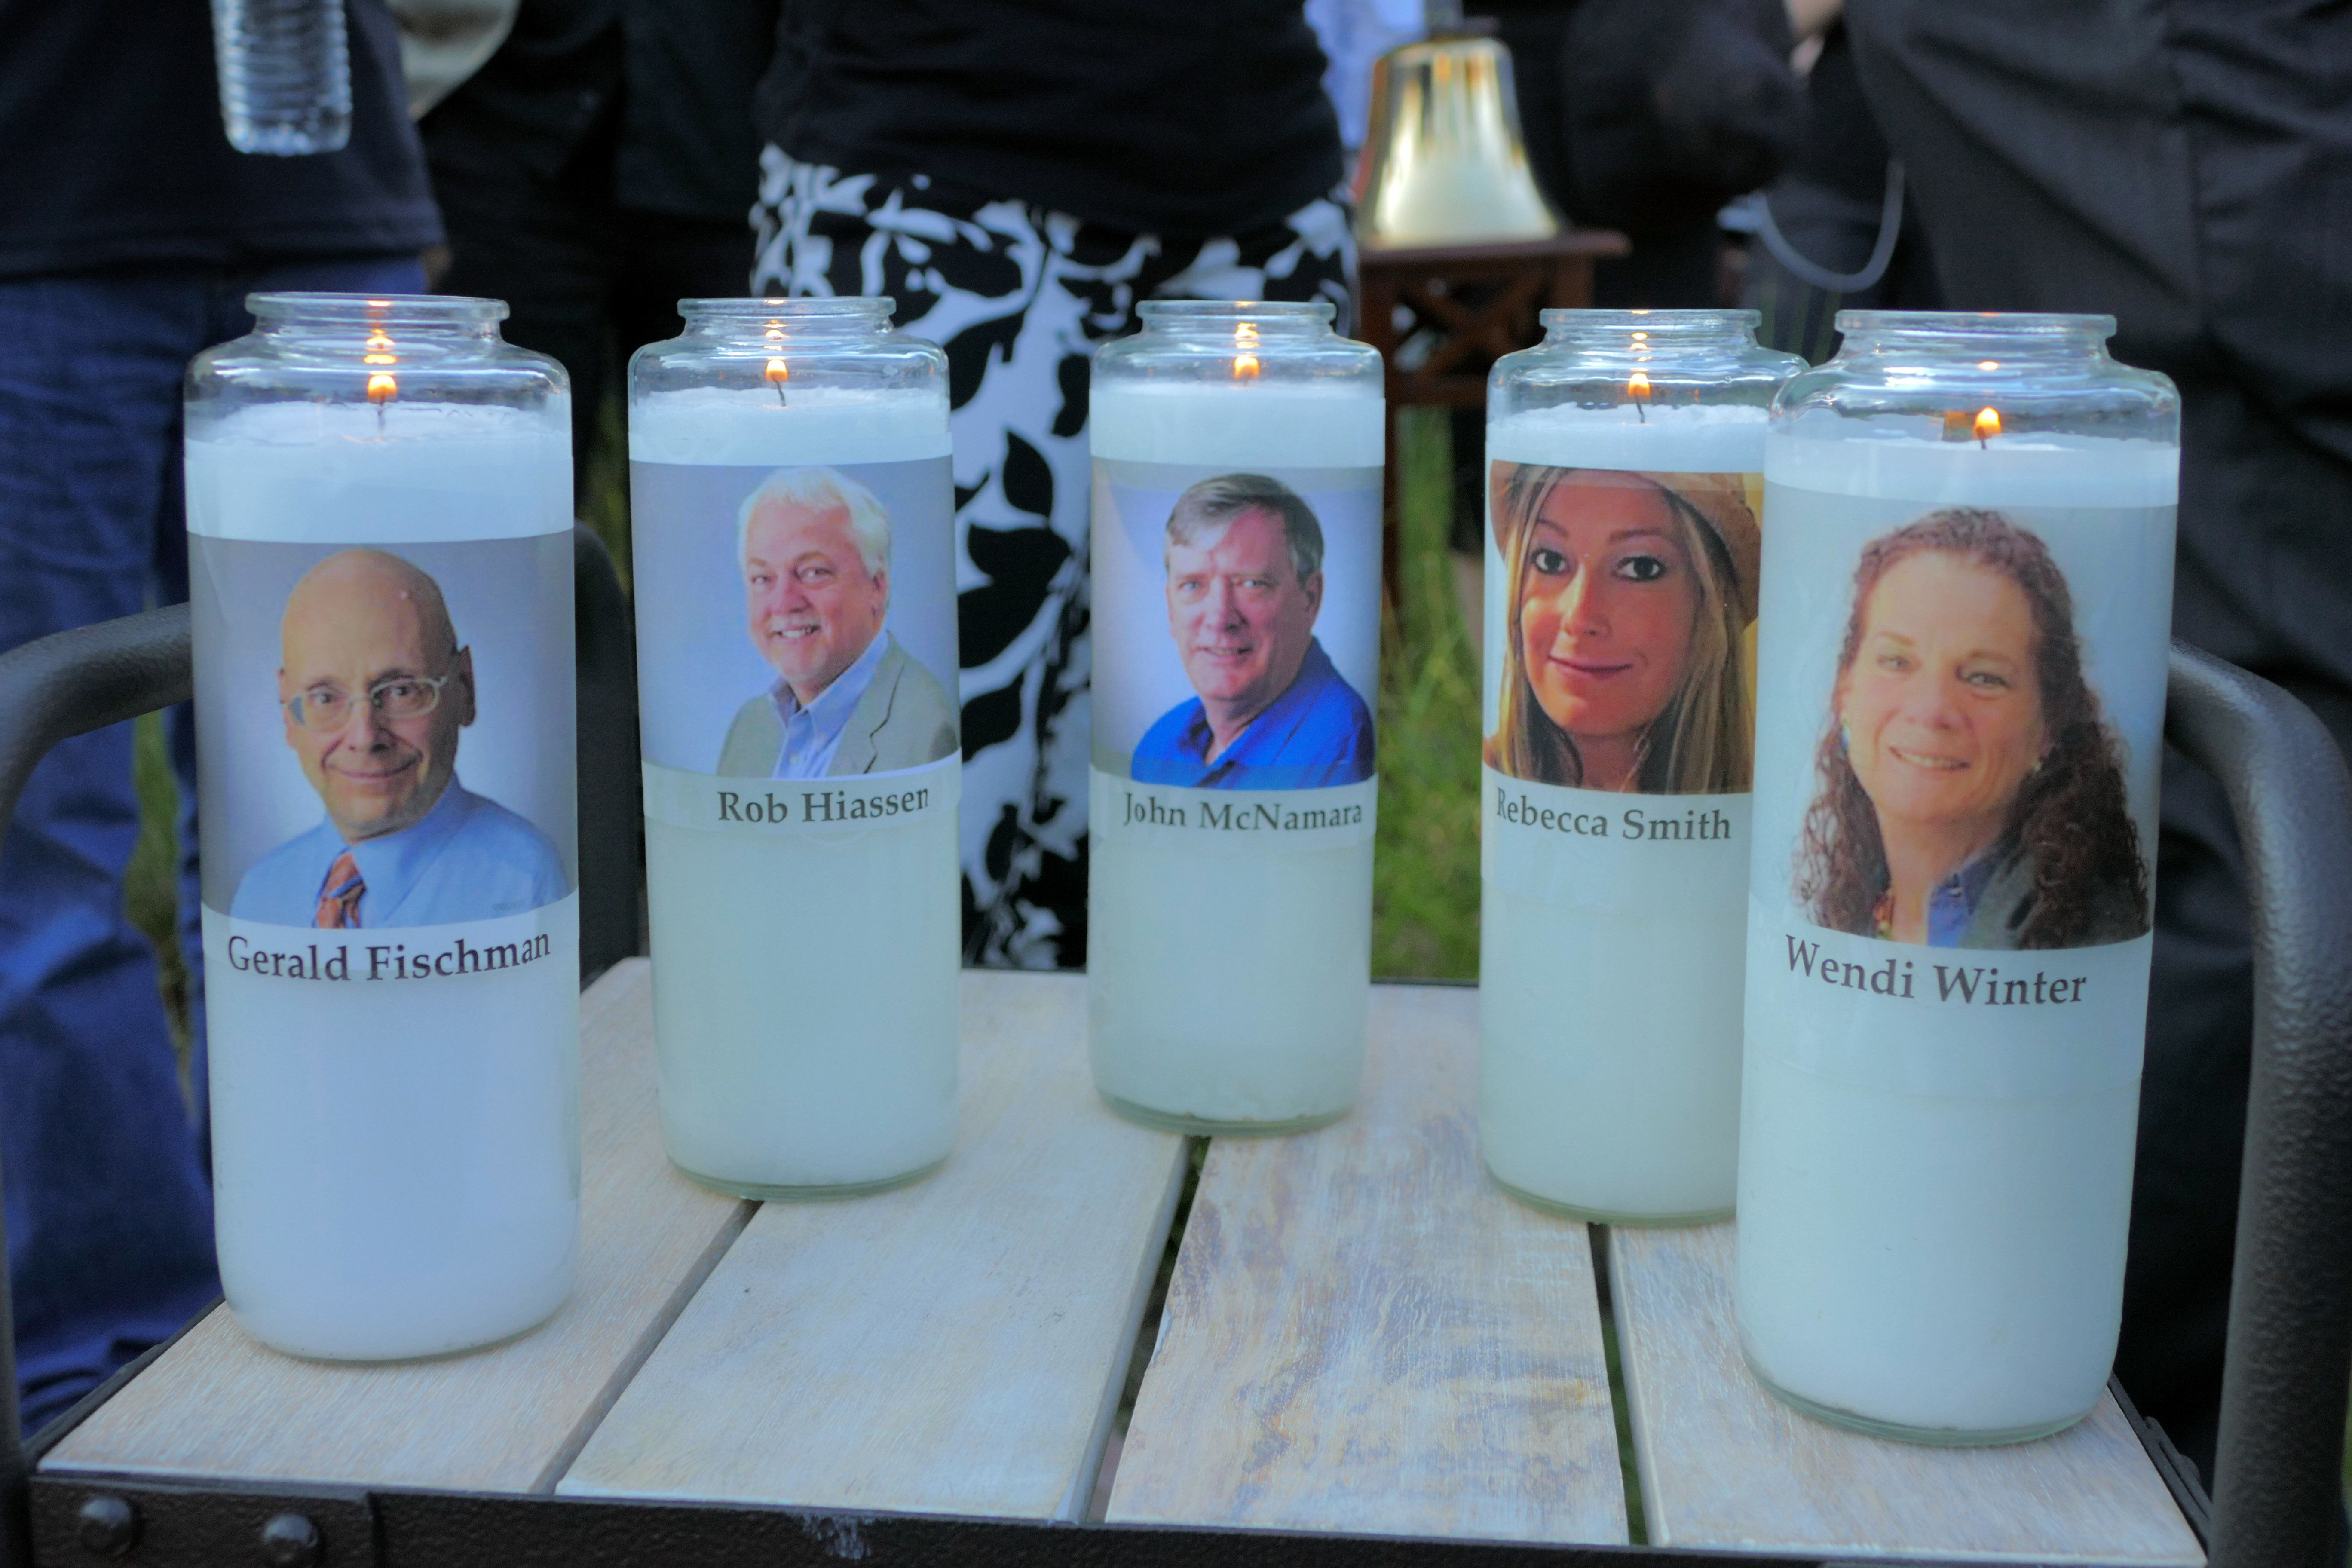 Candles honoring Gerald Fischman, Rob Hiassen, John McNamara, Rebecca Smith, and Wendi Winters flicker as the sun sets during a candlelight vigil on Friday, June 29, 2018, at Annapolis Mall for the five Capital Gazette employees slain during a shooting spree in their newsroom. (Karl Merton Ferron/Baltimore Sun/TNS via Getty Images)